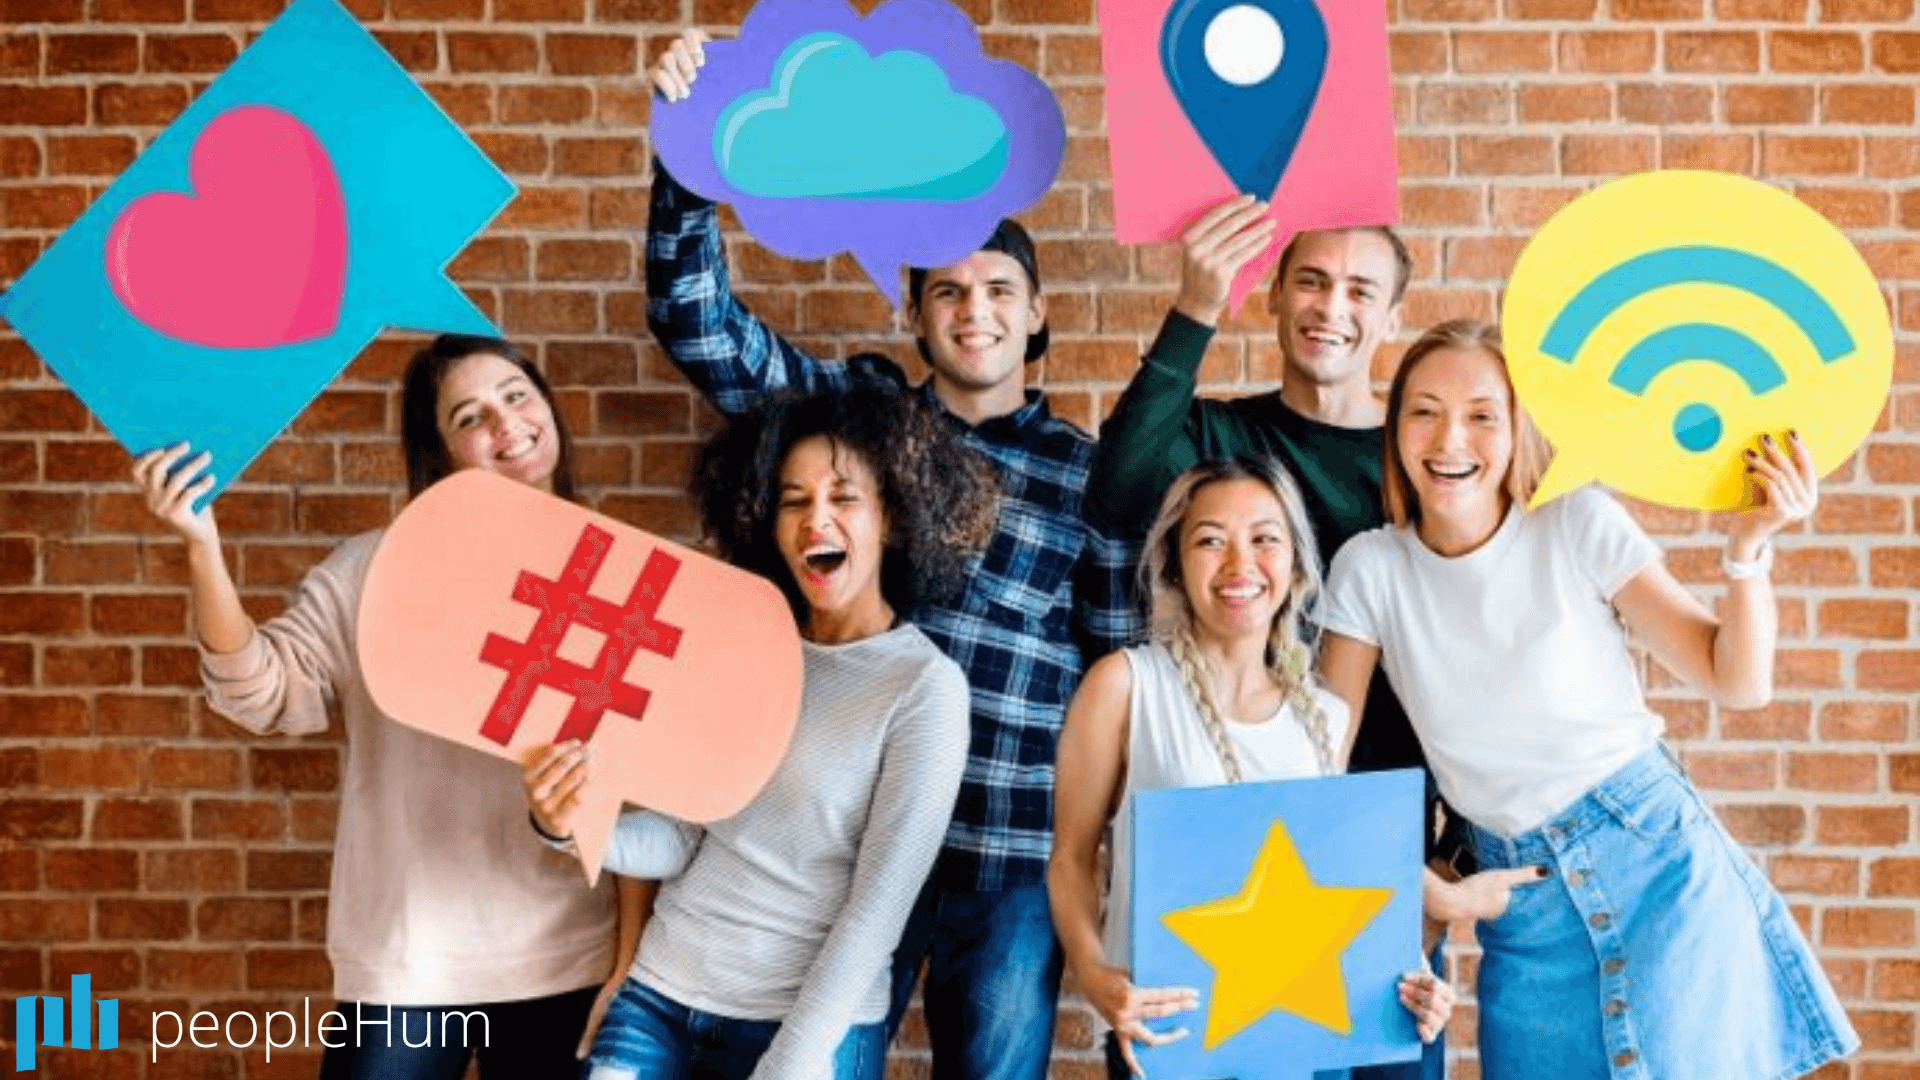 How to retain and engage Gen Z employees